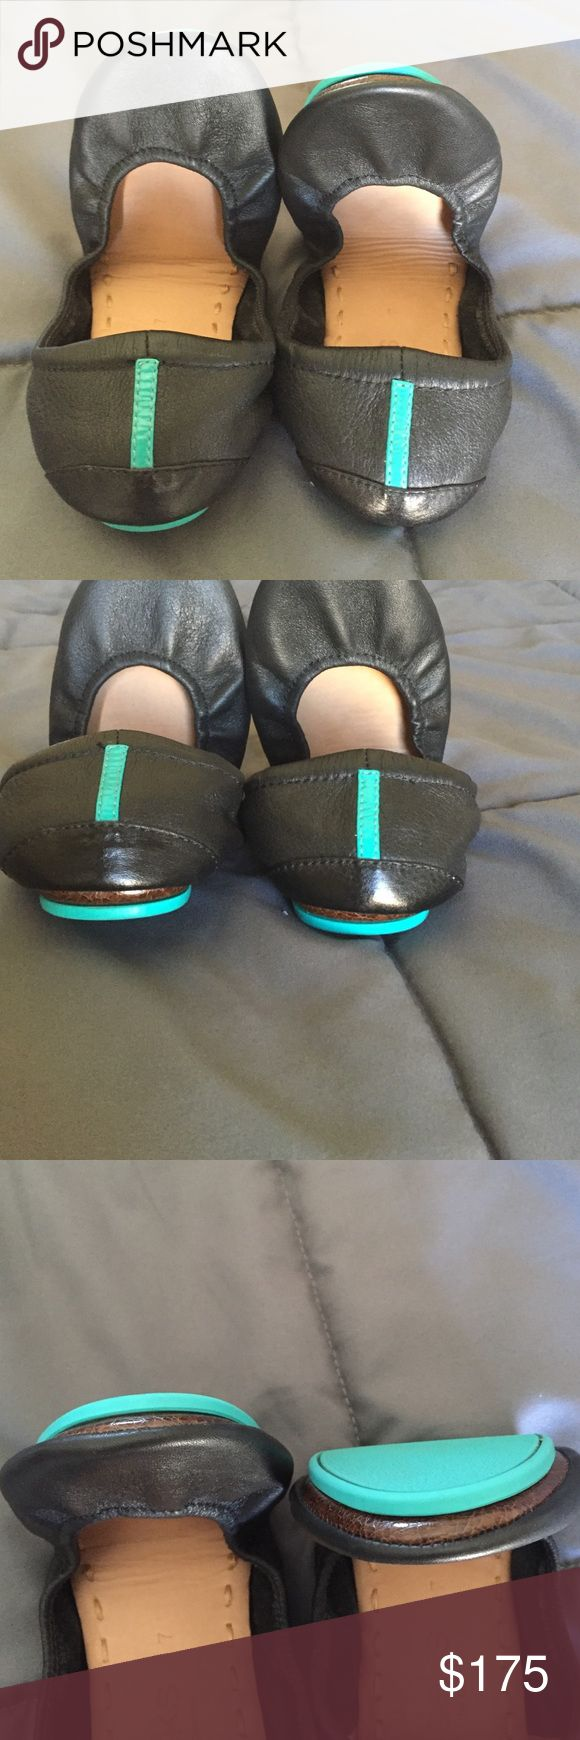 Matte Black Tieks, 7 Like new Tieks, matte black, size 7. I don't think these even made it out of the house! Price is firm Tieks Shoes Flats & Loafers